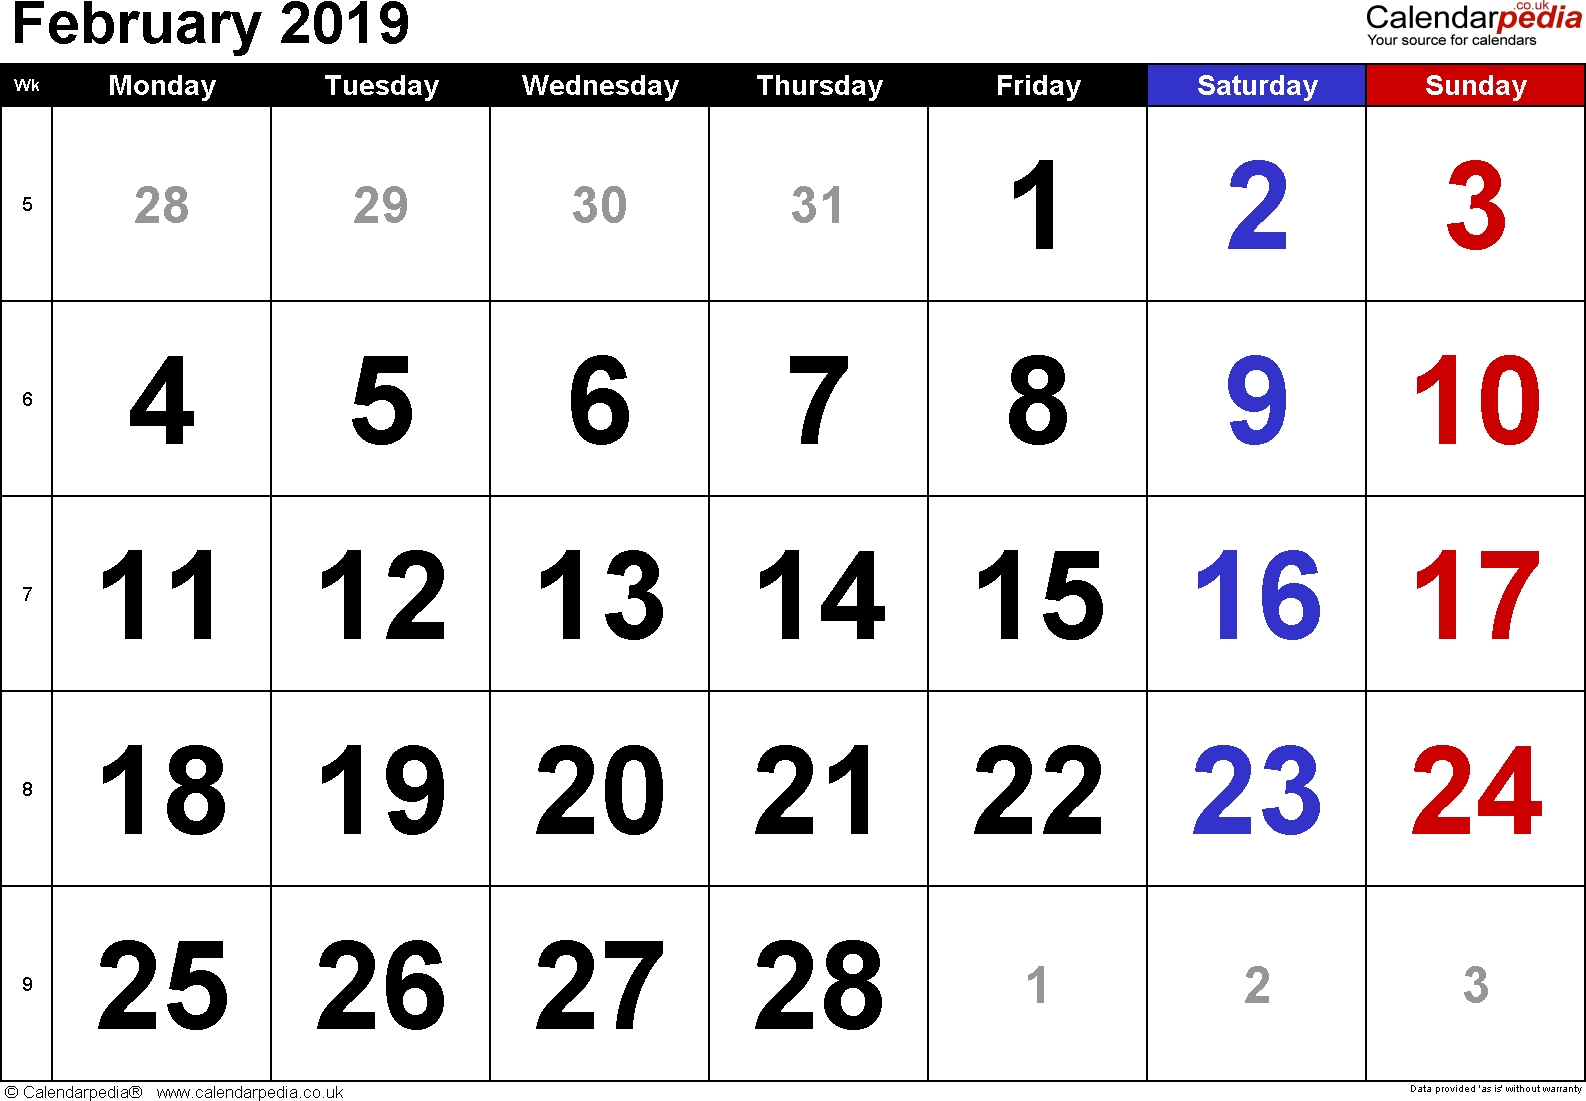 Calendar February 2019 Uk, Bank Holidays, Excel/pdf/word Templates Feb 5 2019 Calendar